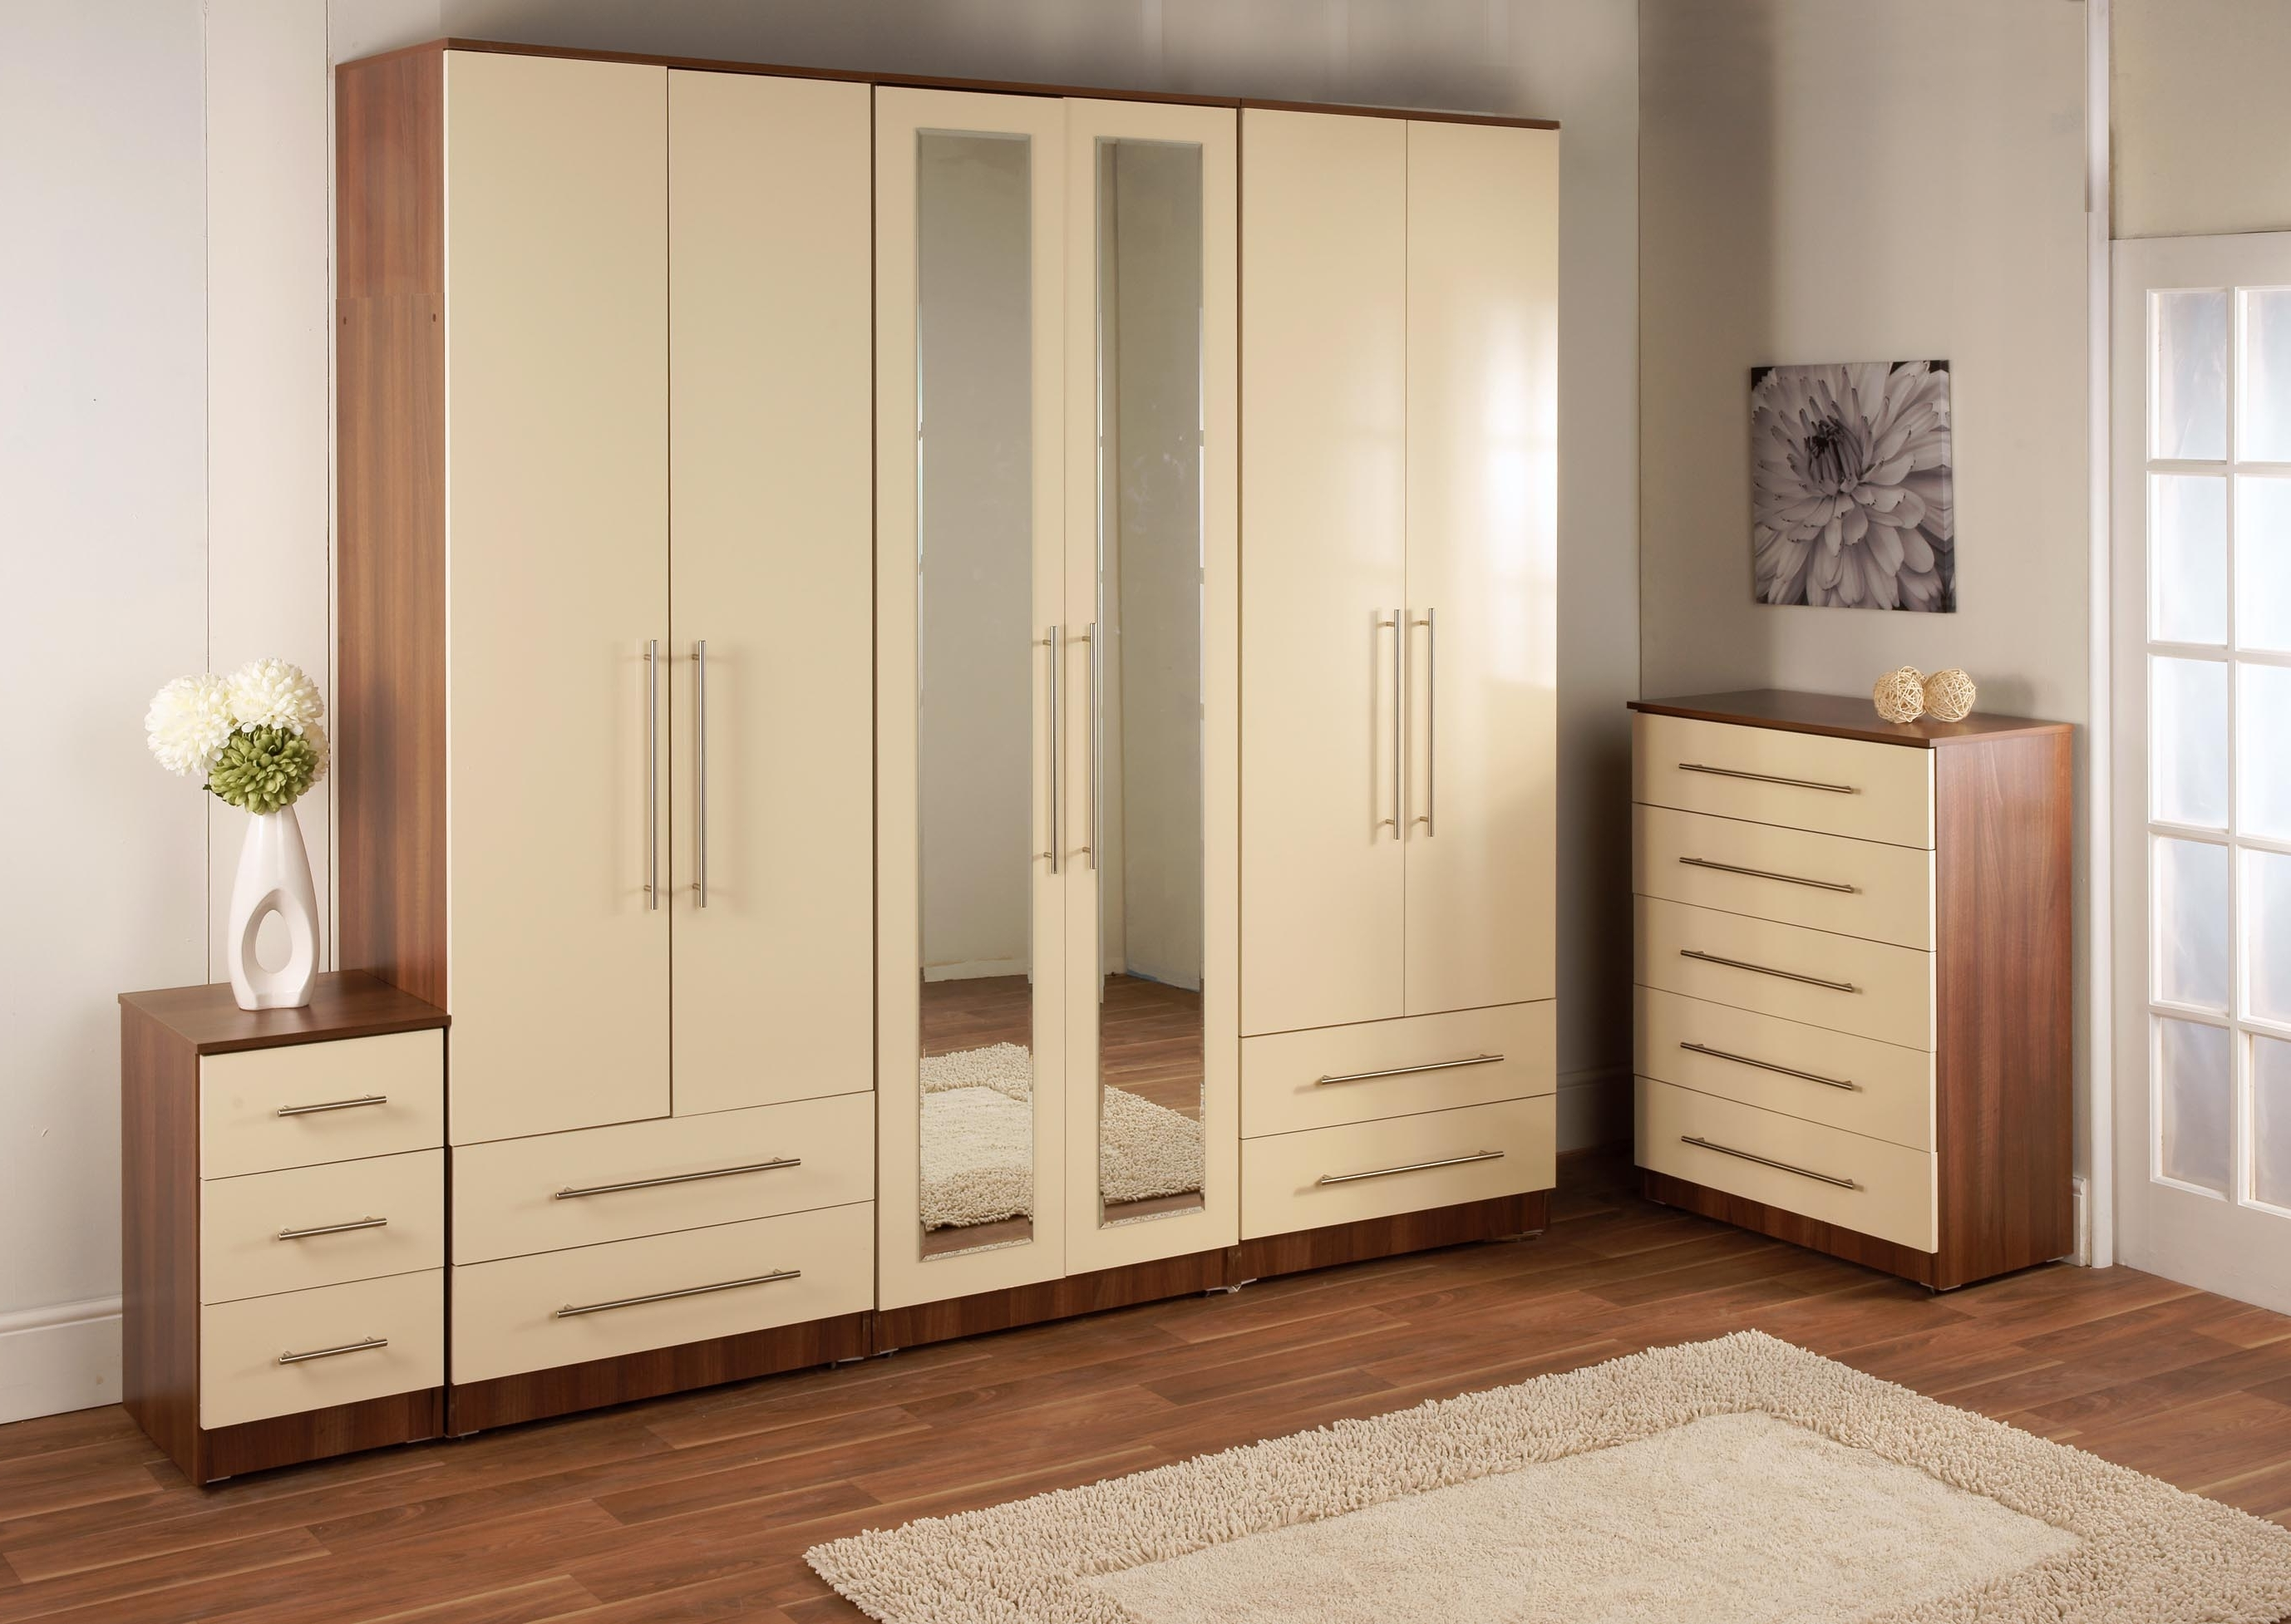 Fashionable Cream Gloss Wardrobes Throughout Bedroom Furniture Wardrobes (View 7 of 15)